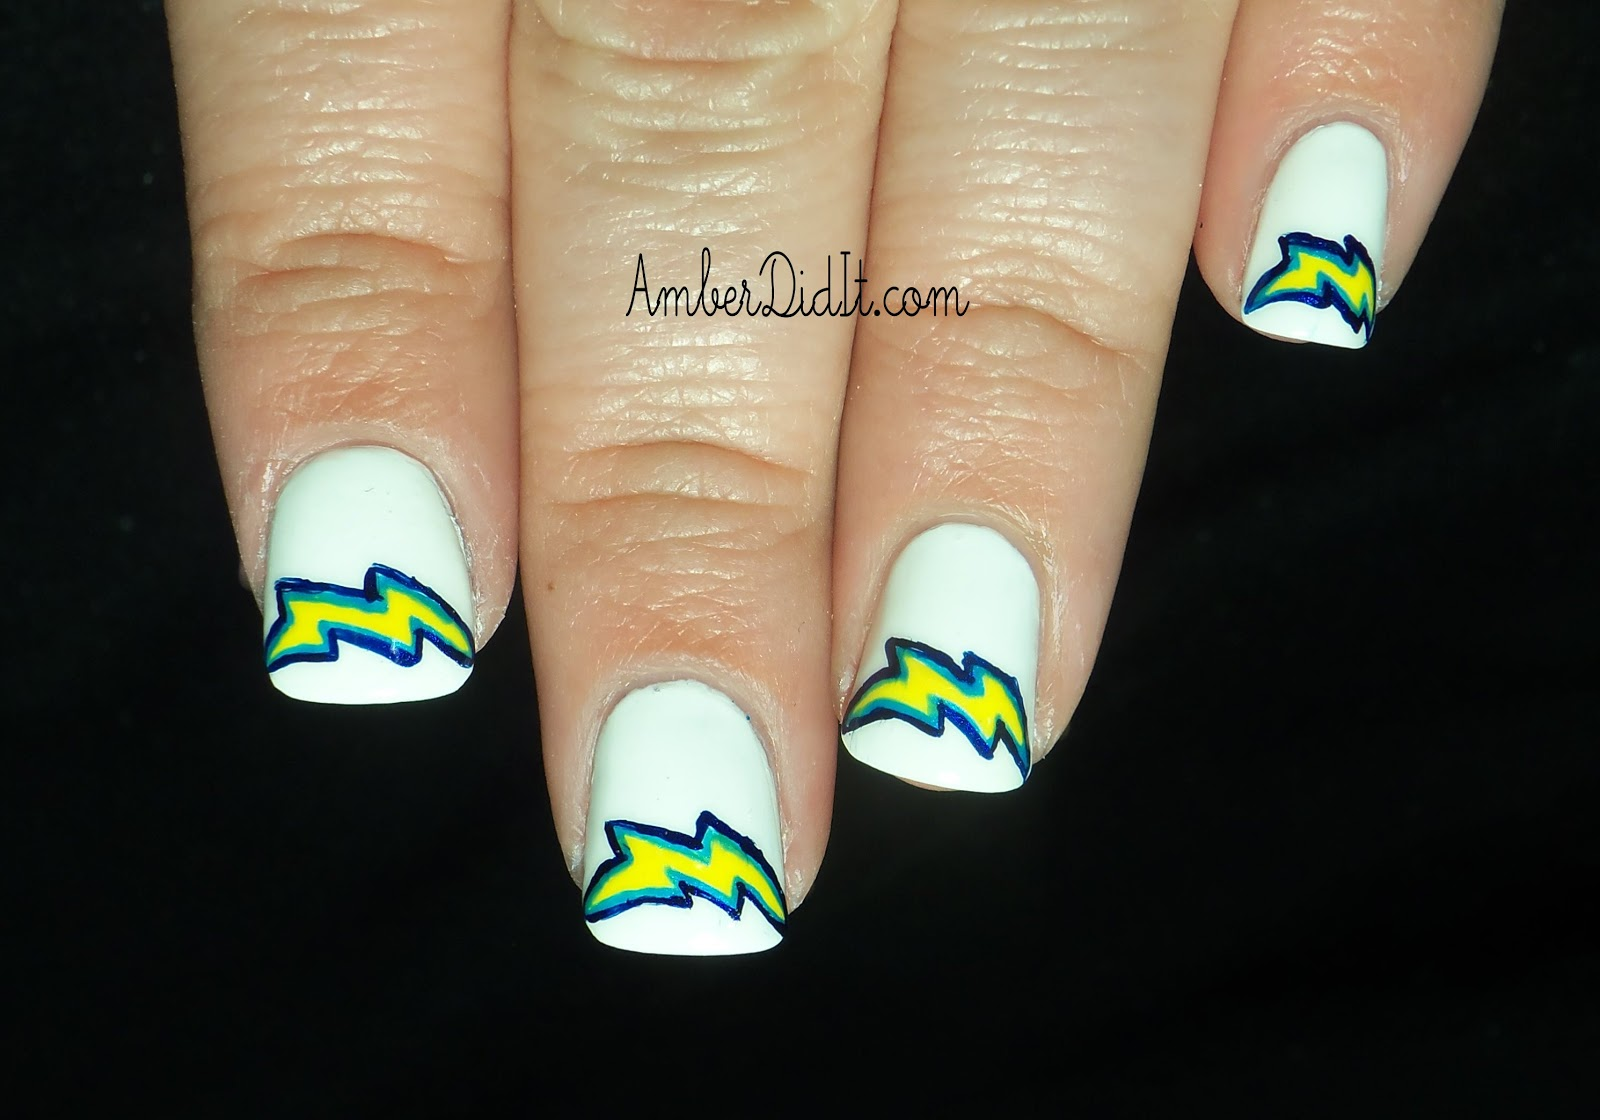 Amber did it!: NFL Series #14~ San Diego Chargers Nails